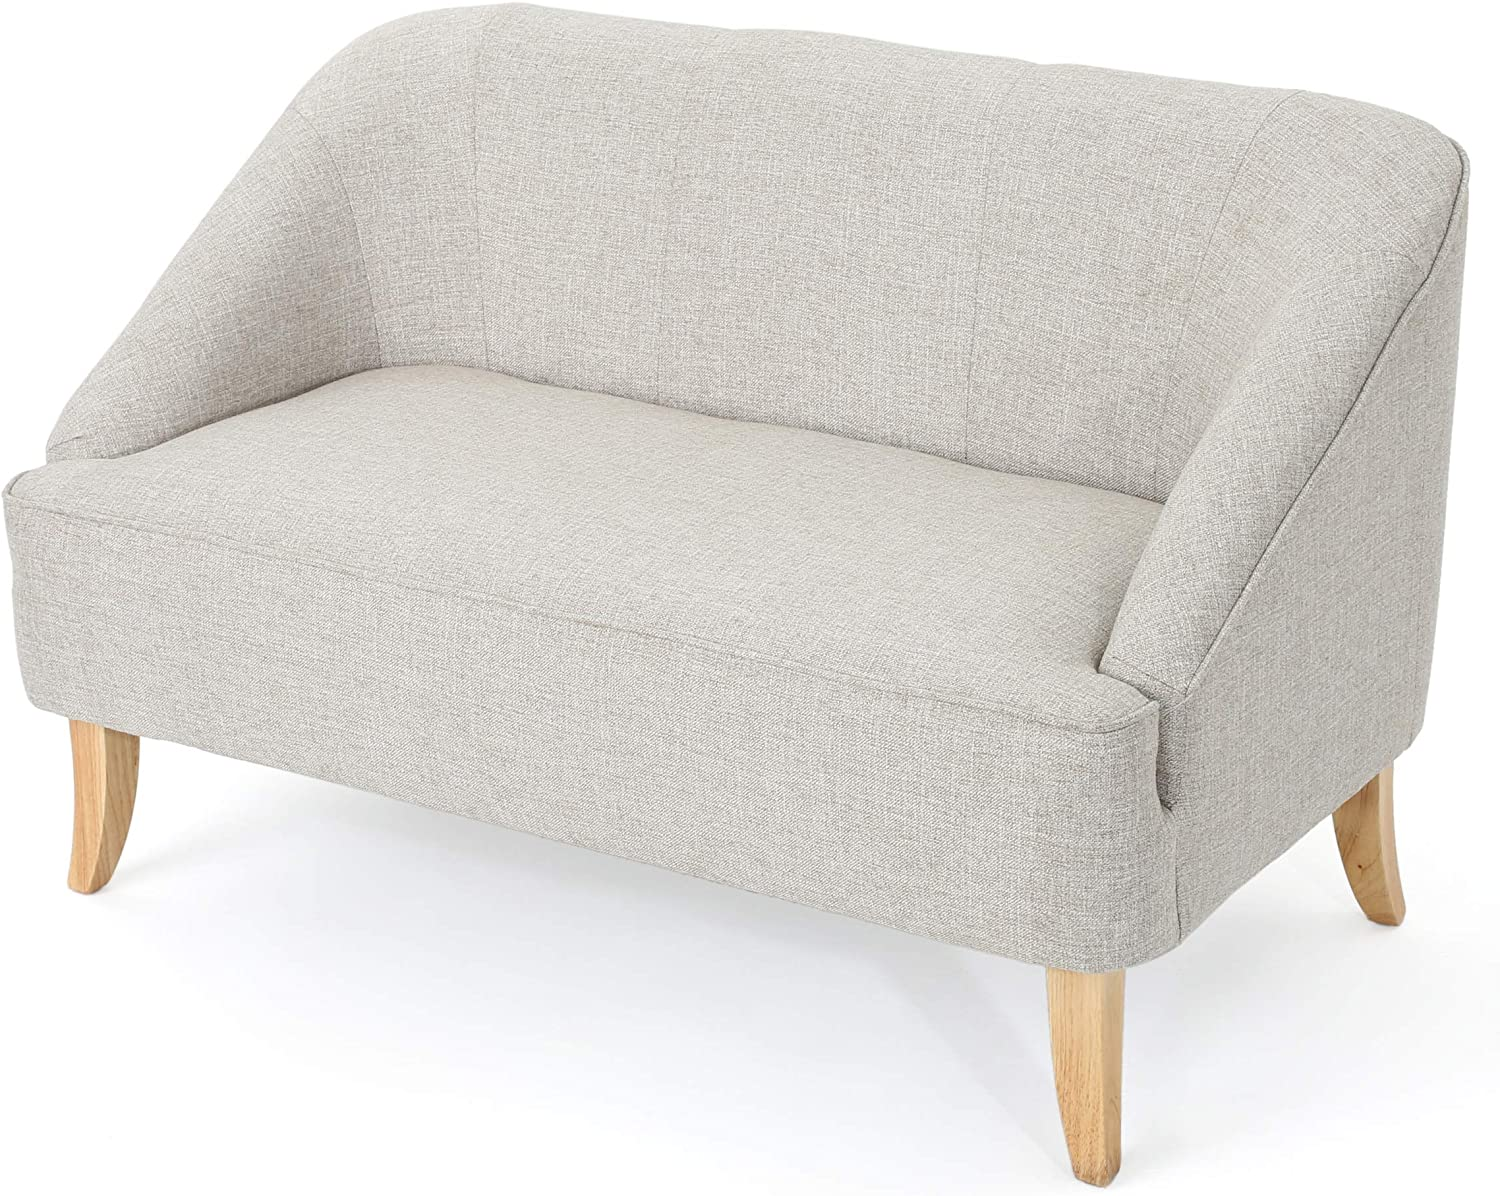 gray and wood love seat